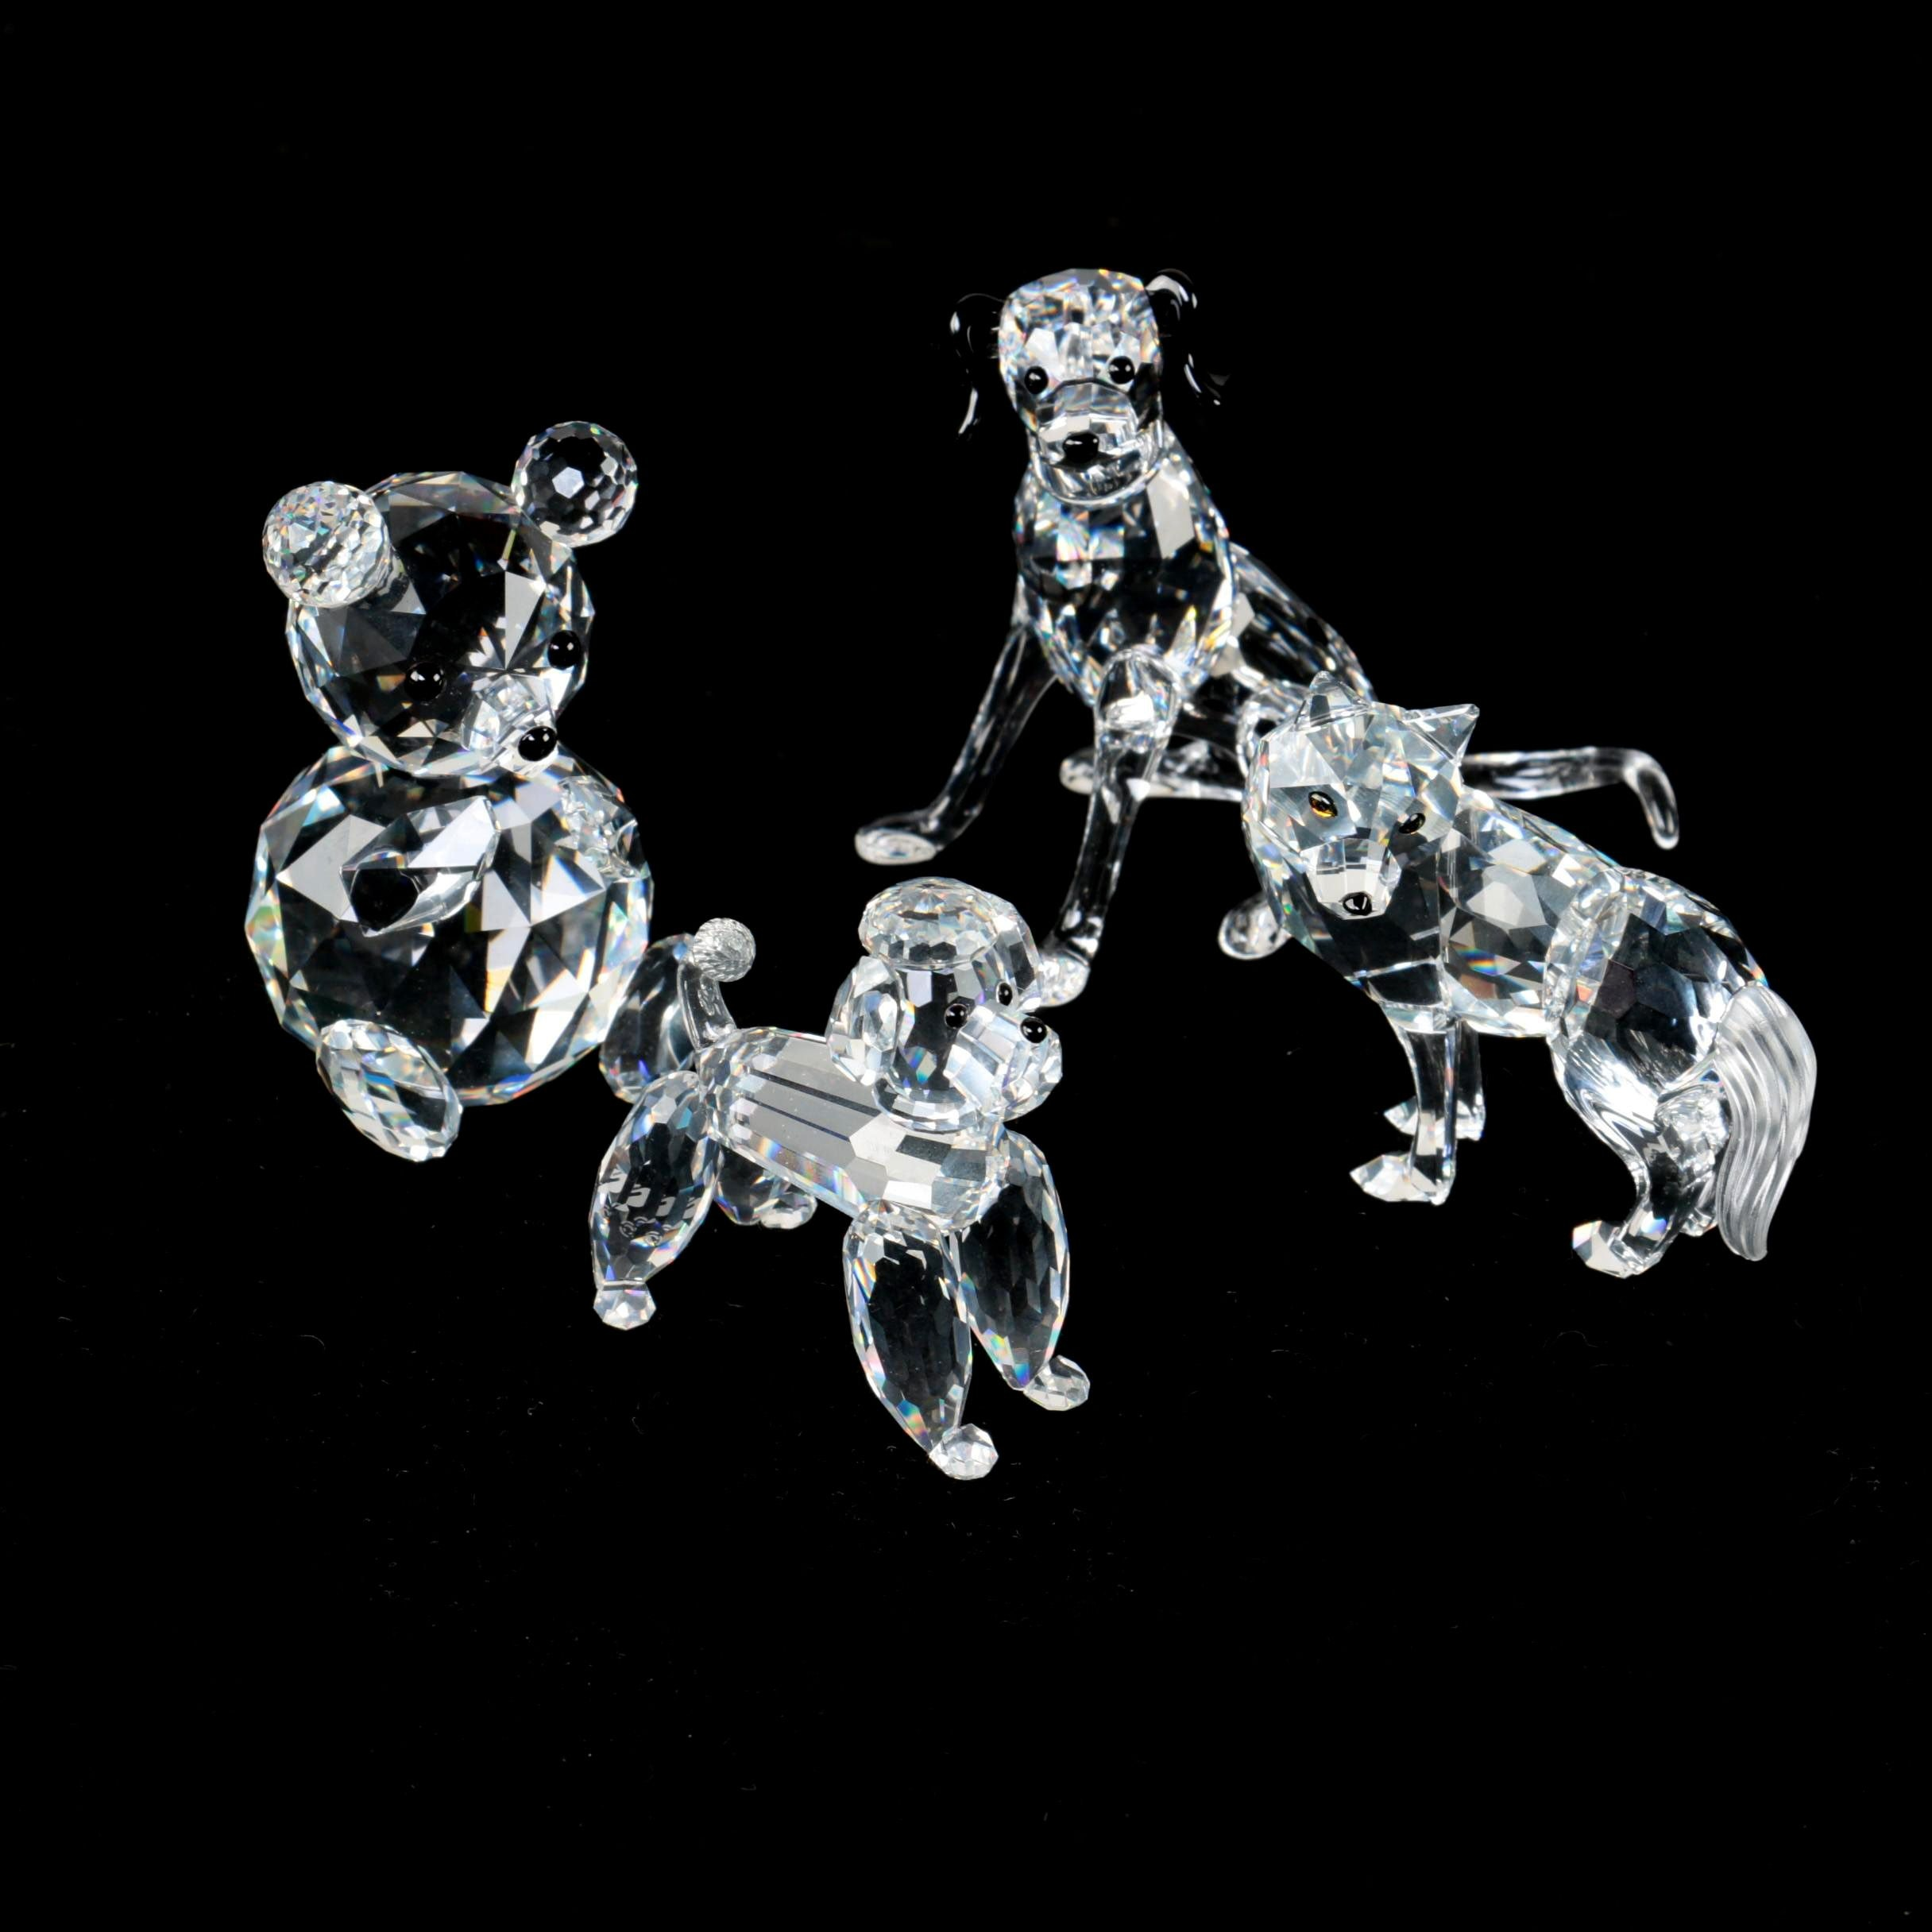 Swarovski Crystal Figurines Including Wolf and Poodle